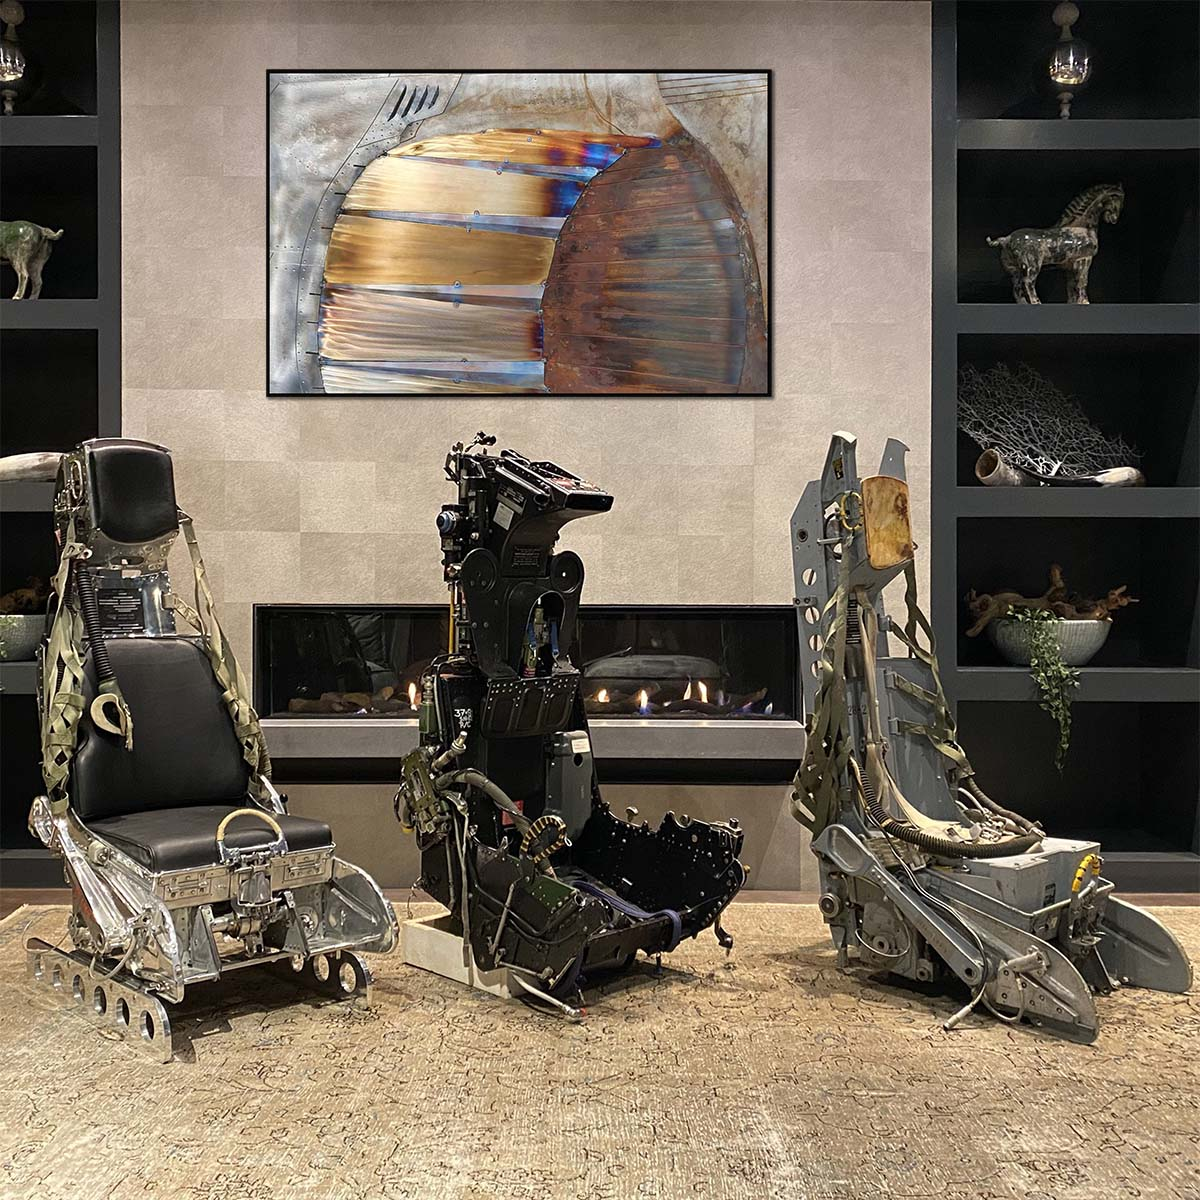 Three ejection seats and our steel aviation artwork.